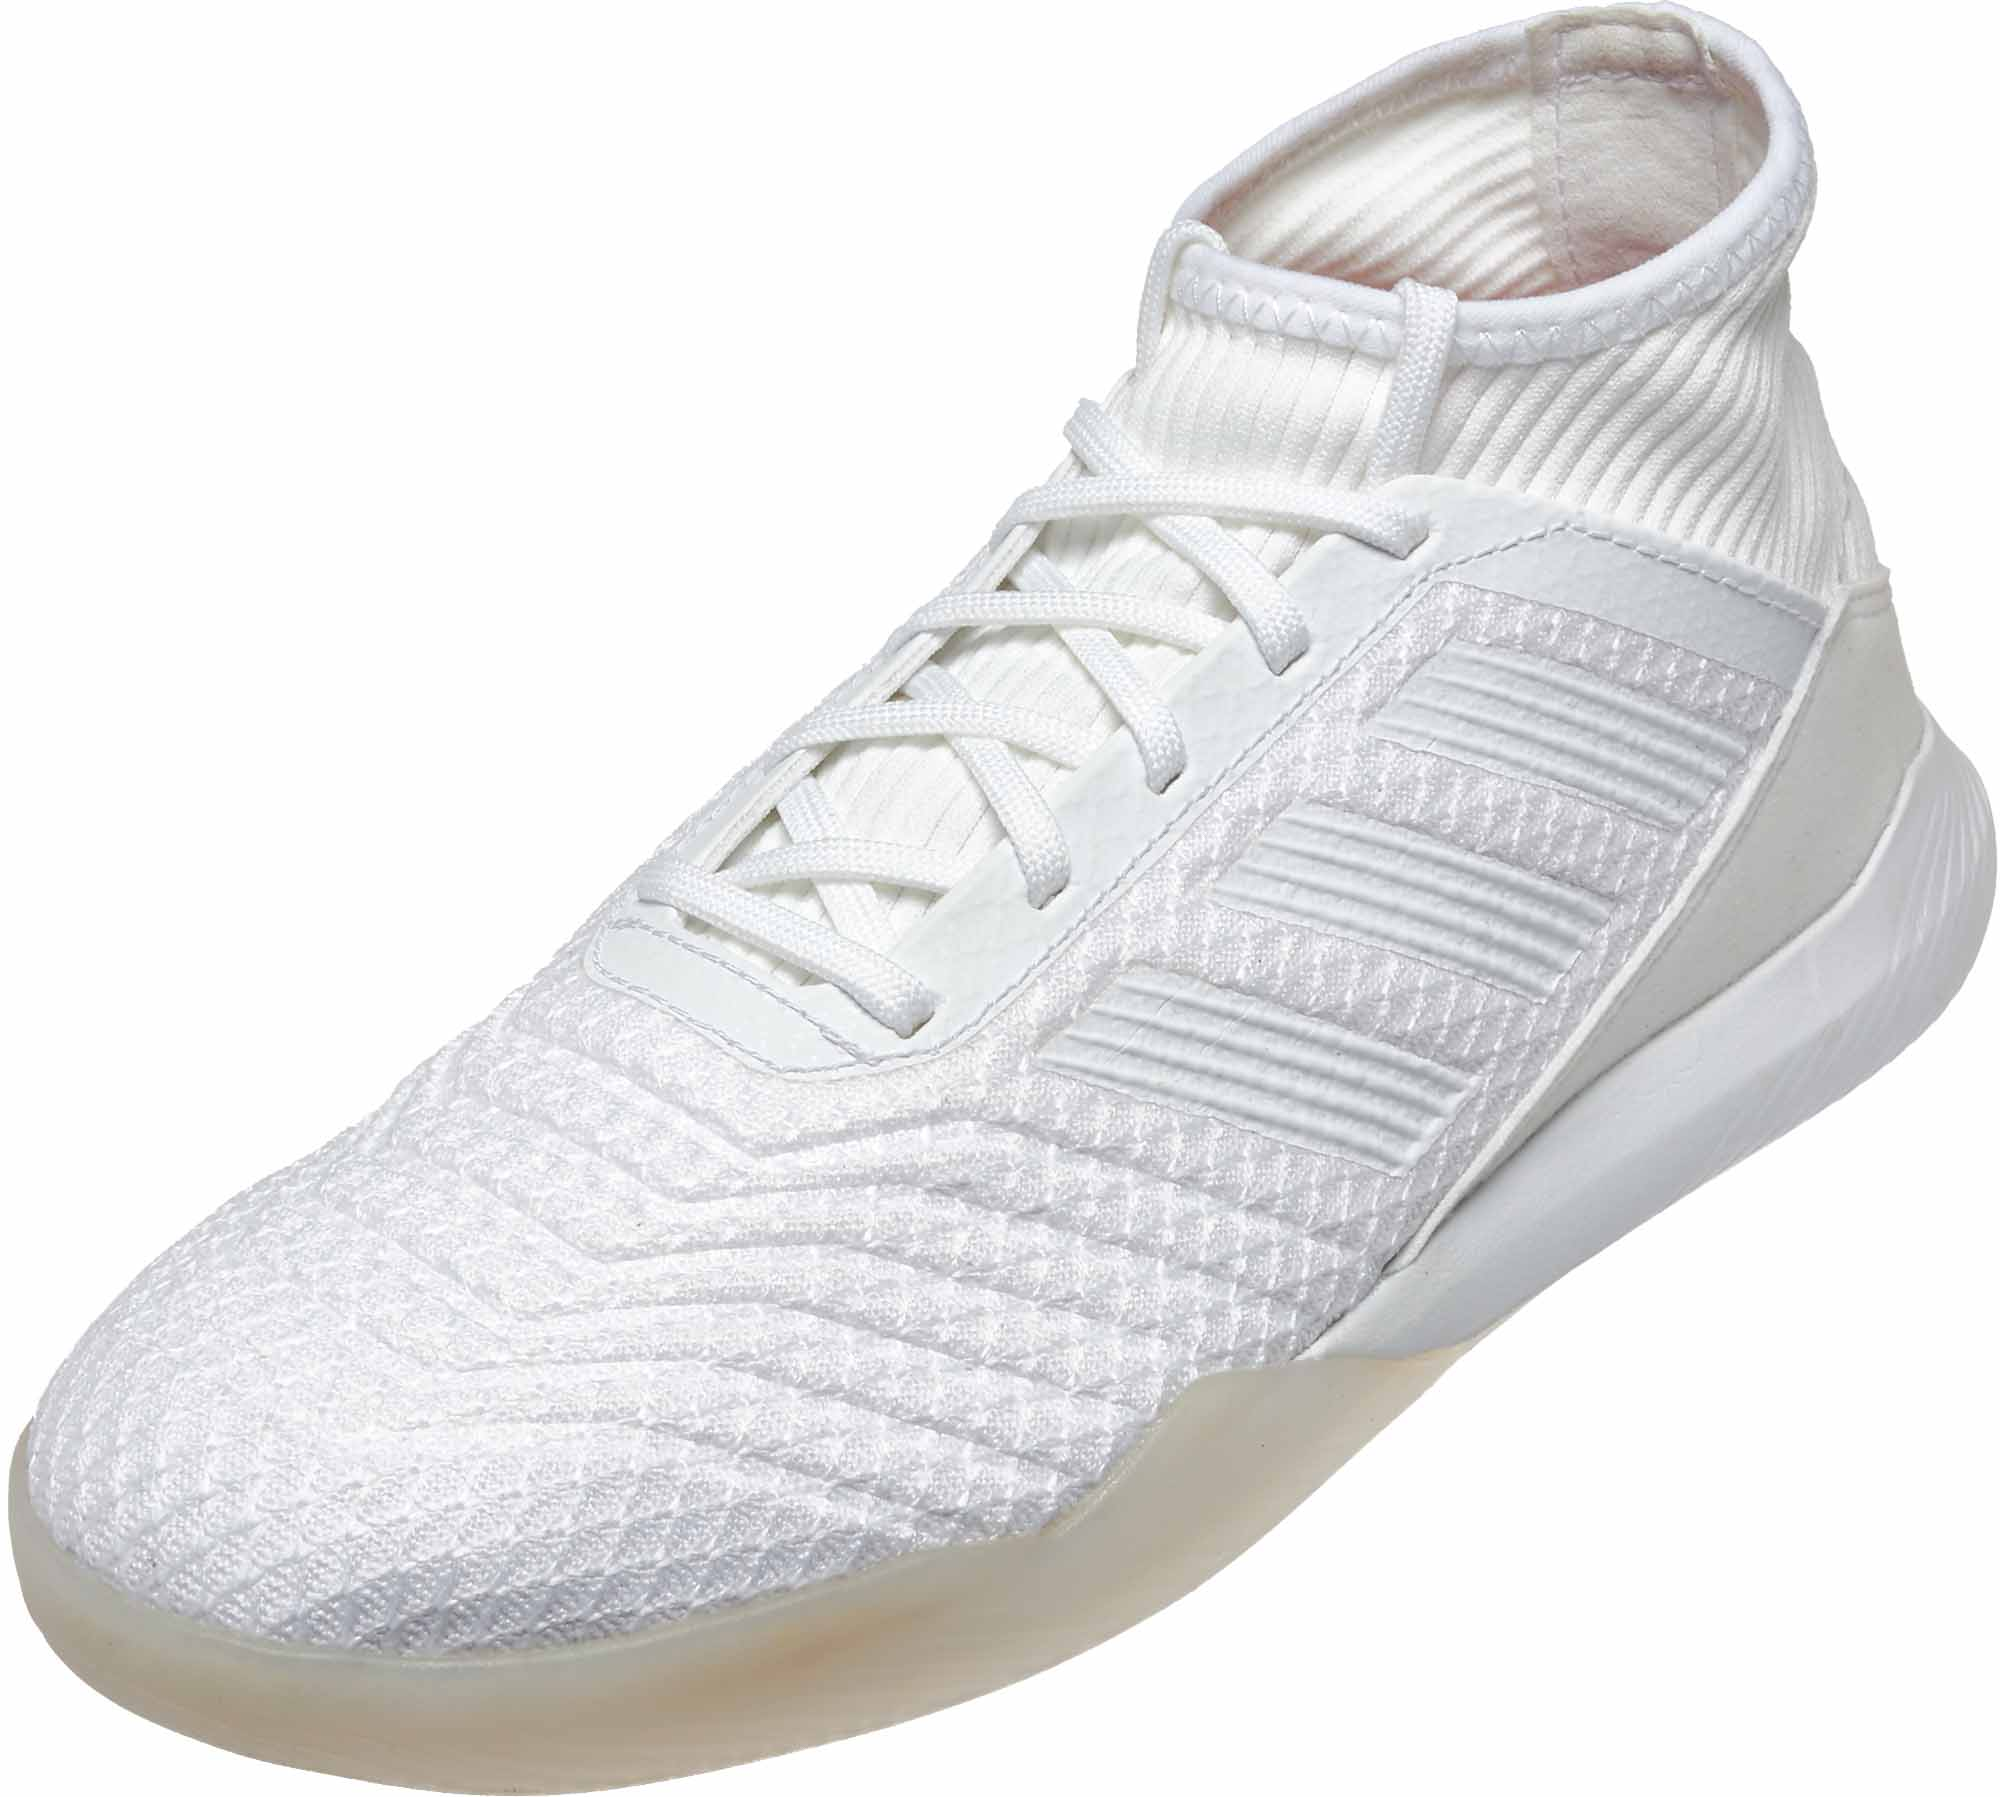 sports shoes 92f13 fcf94 adidas Predator Tango 18.3 TR – Cold Blooded